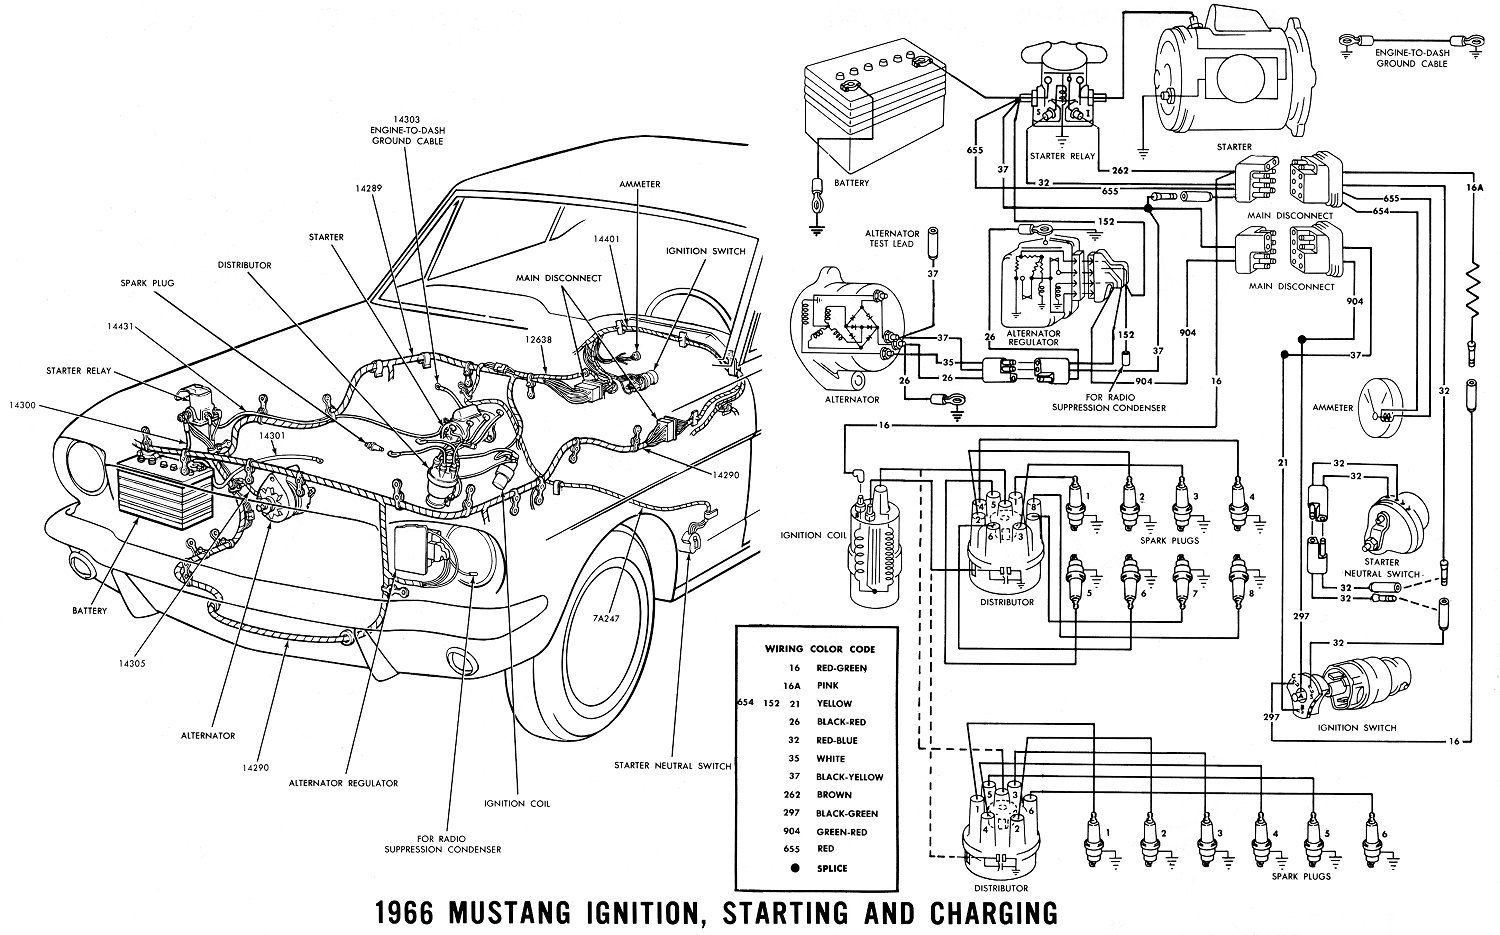 D Gt Ammeter Pegged Mystery White Black Wire Ignition Starting Charging on 1966 Mustang Heater Wiring Diagram